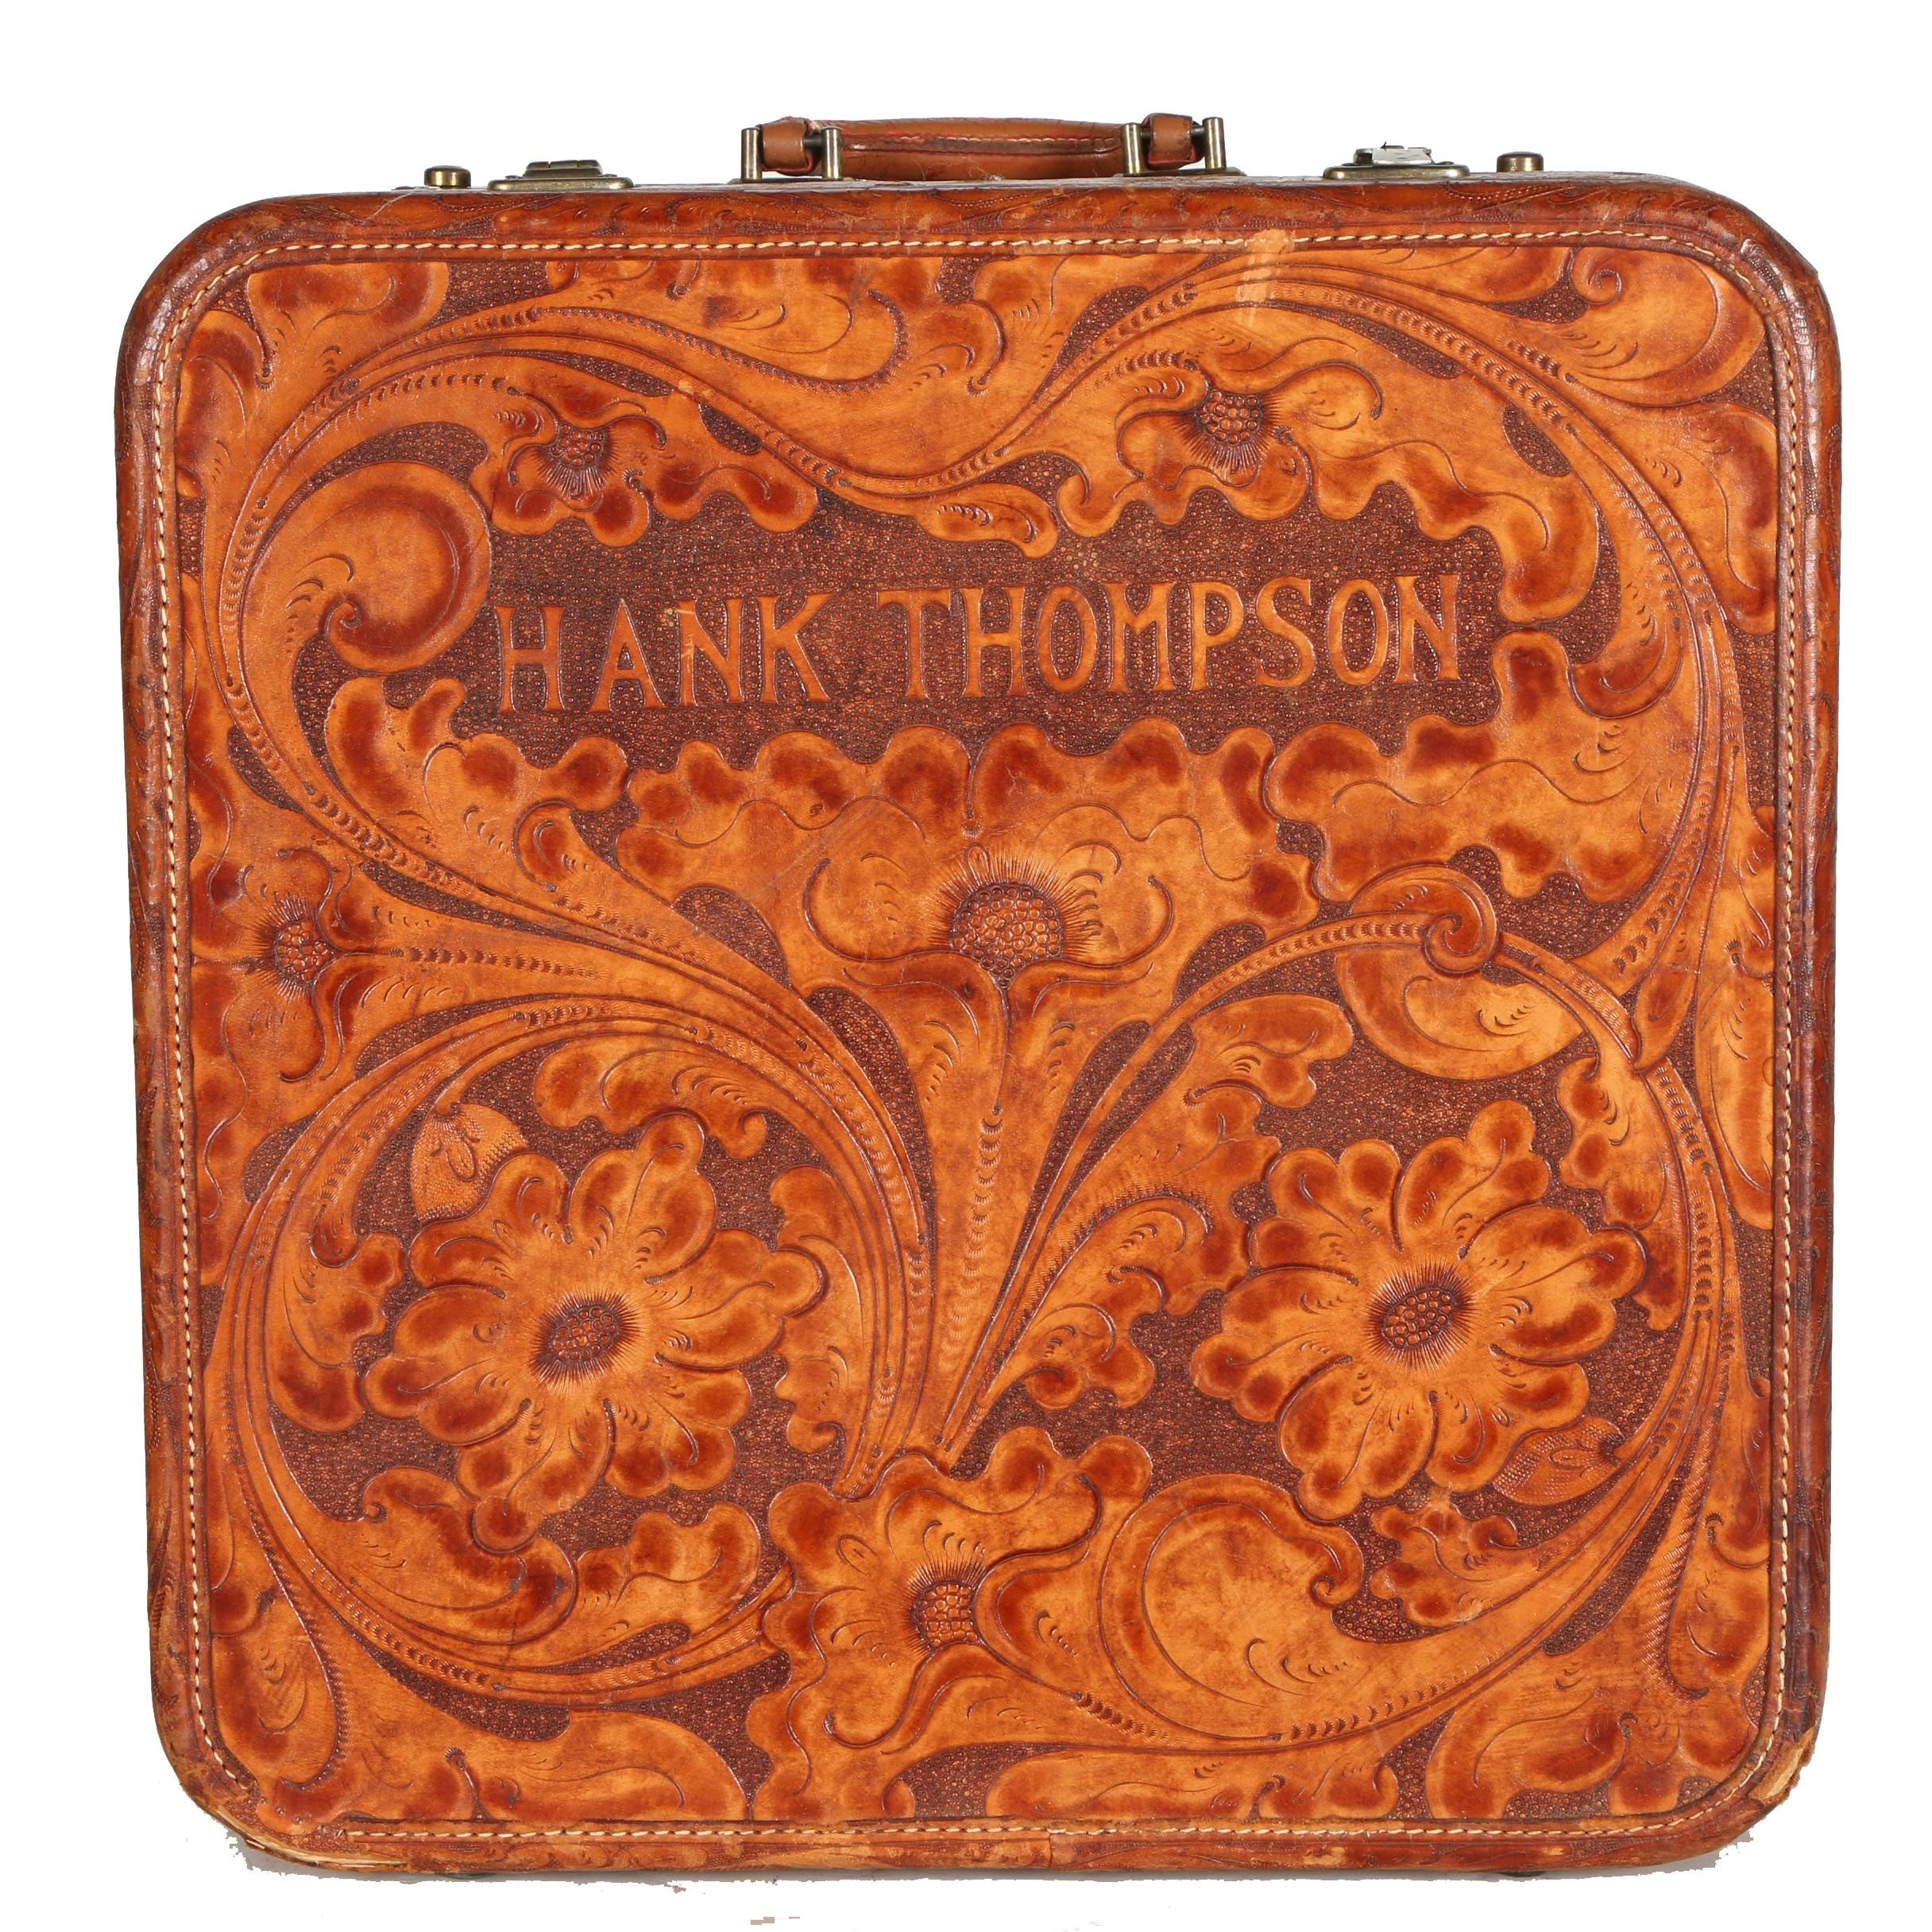 Circa 1957 Custom Roark Tooled Leather Case For Hank Thompson